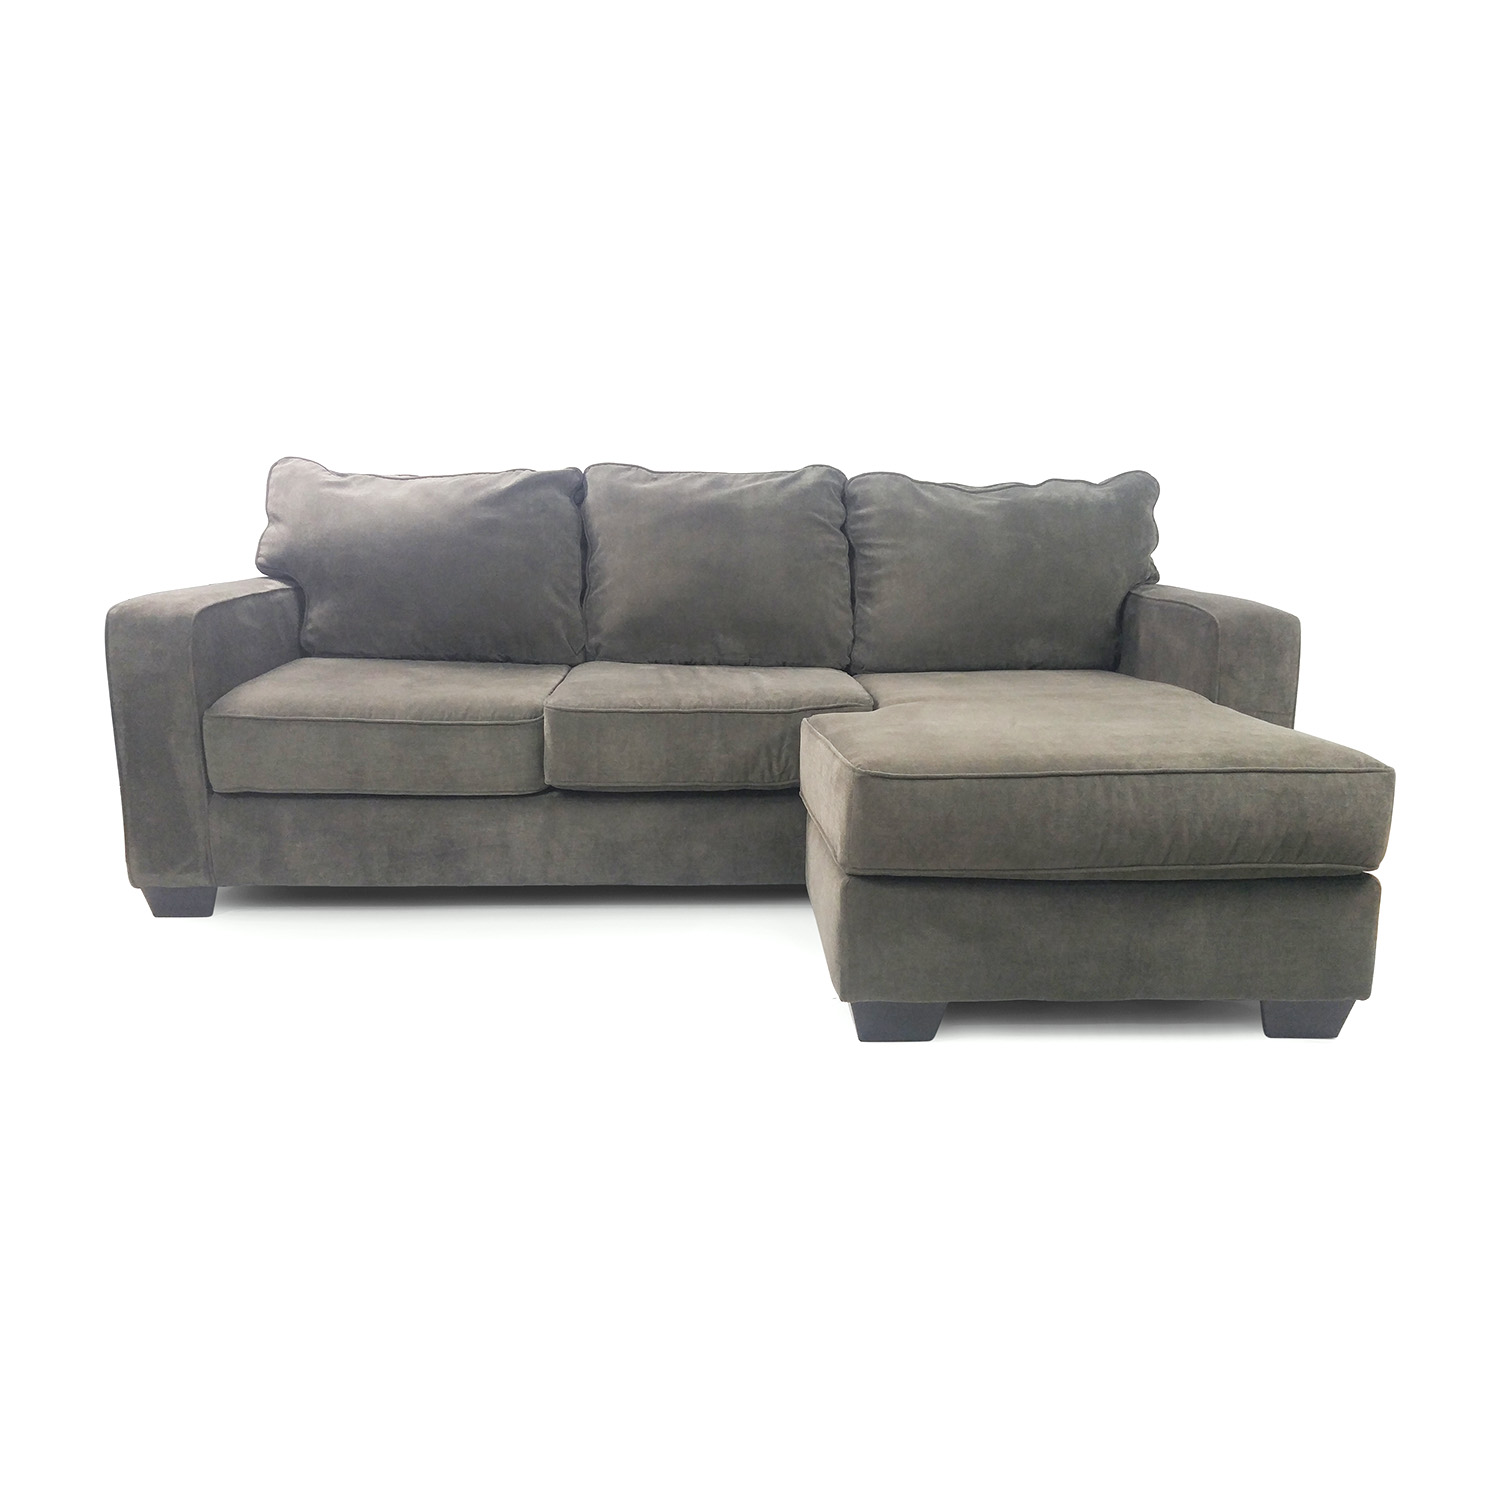 Ashley Furniture Hodan Sofa Chaise discount